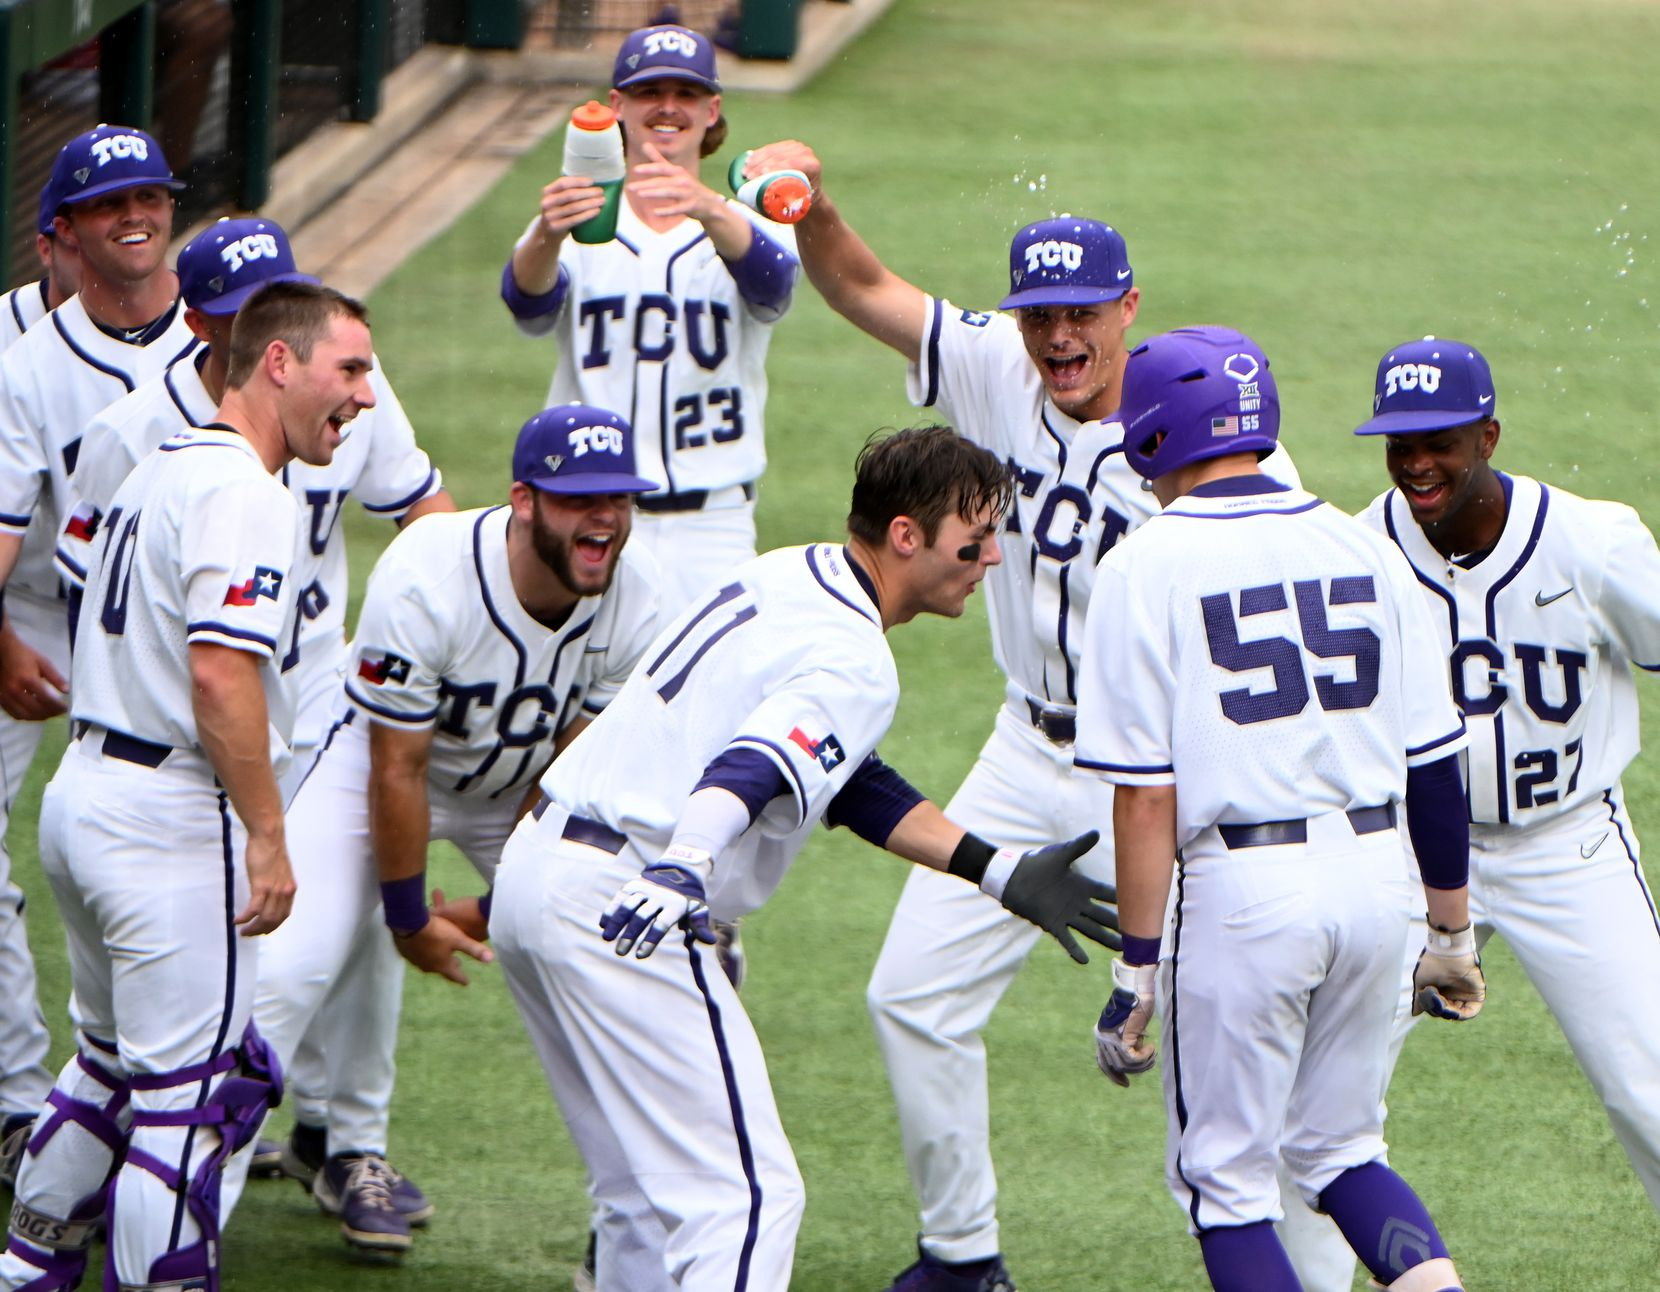 TCU players celebrate with Brayden Taylor (55) after his first inning home run during their game against  McNeese State in the Fort Worth Regional NCAA baseball tournament, Friday, June 4, 2021, in Fort Worth, Texas. (Matt Strasen/Special Contributor)